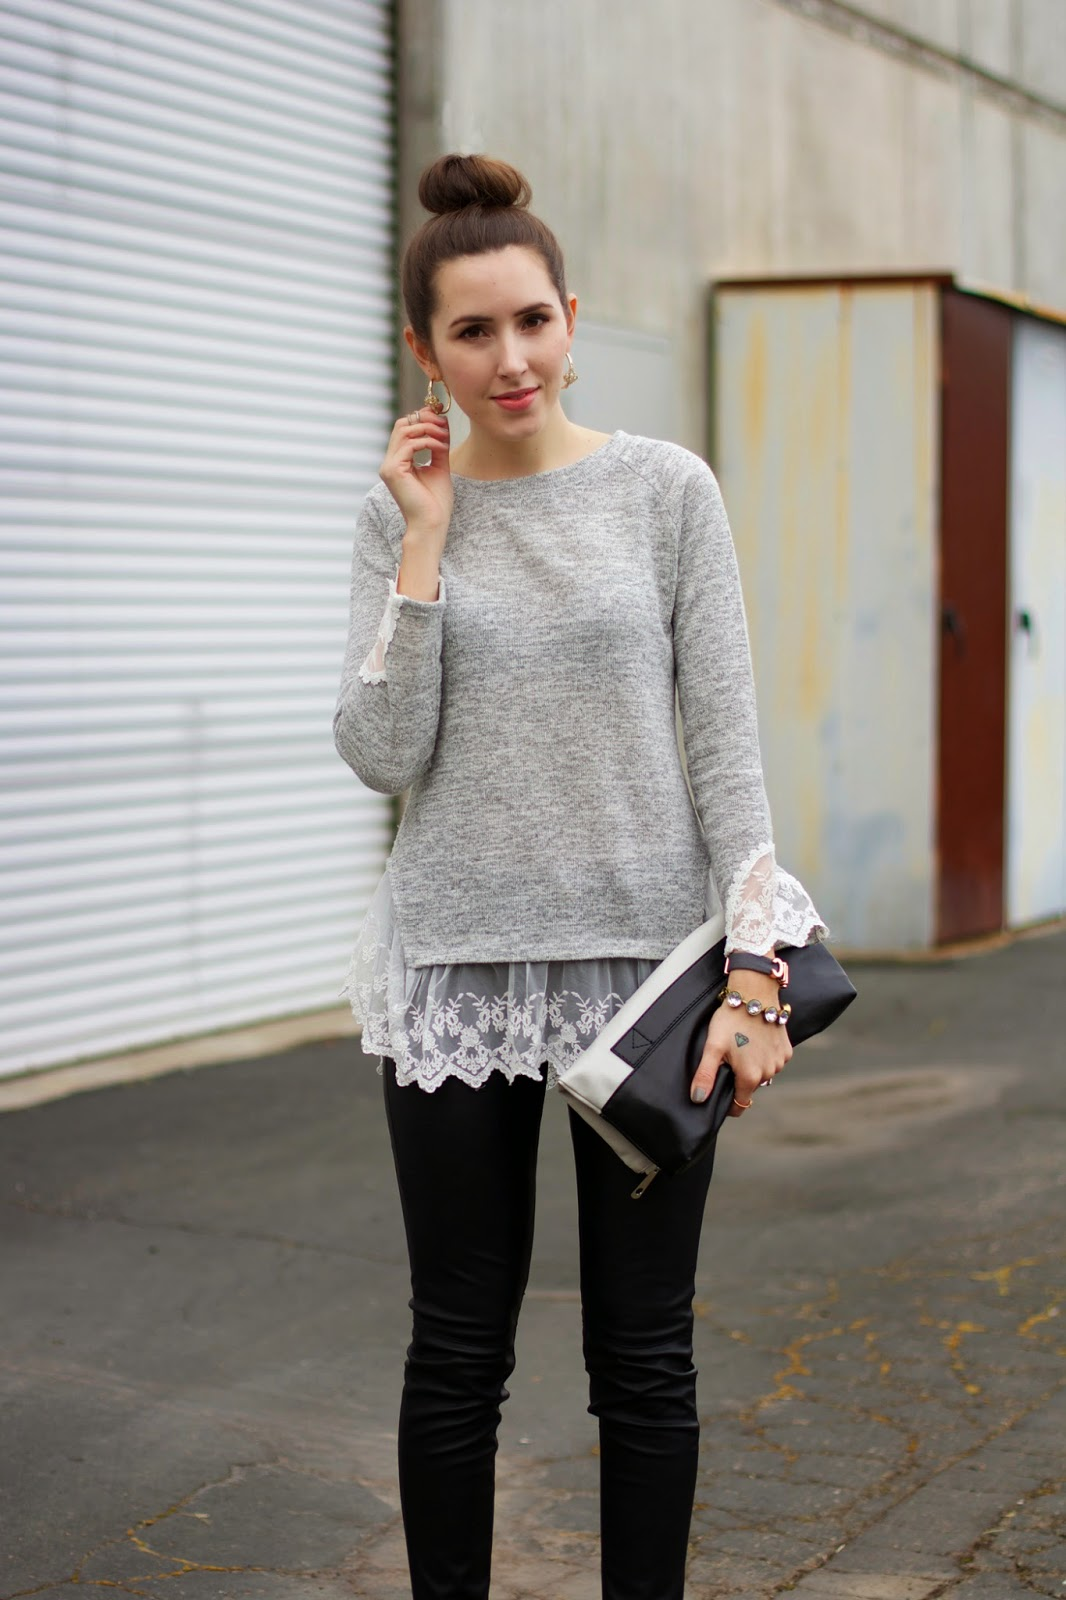 grey-sweater-with-lace-detail-and-leather-pants